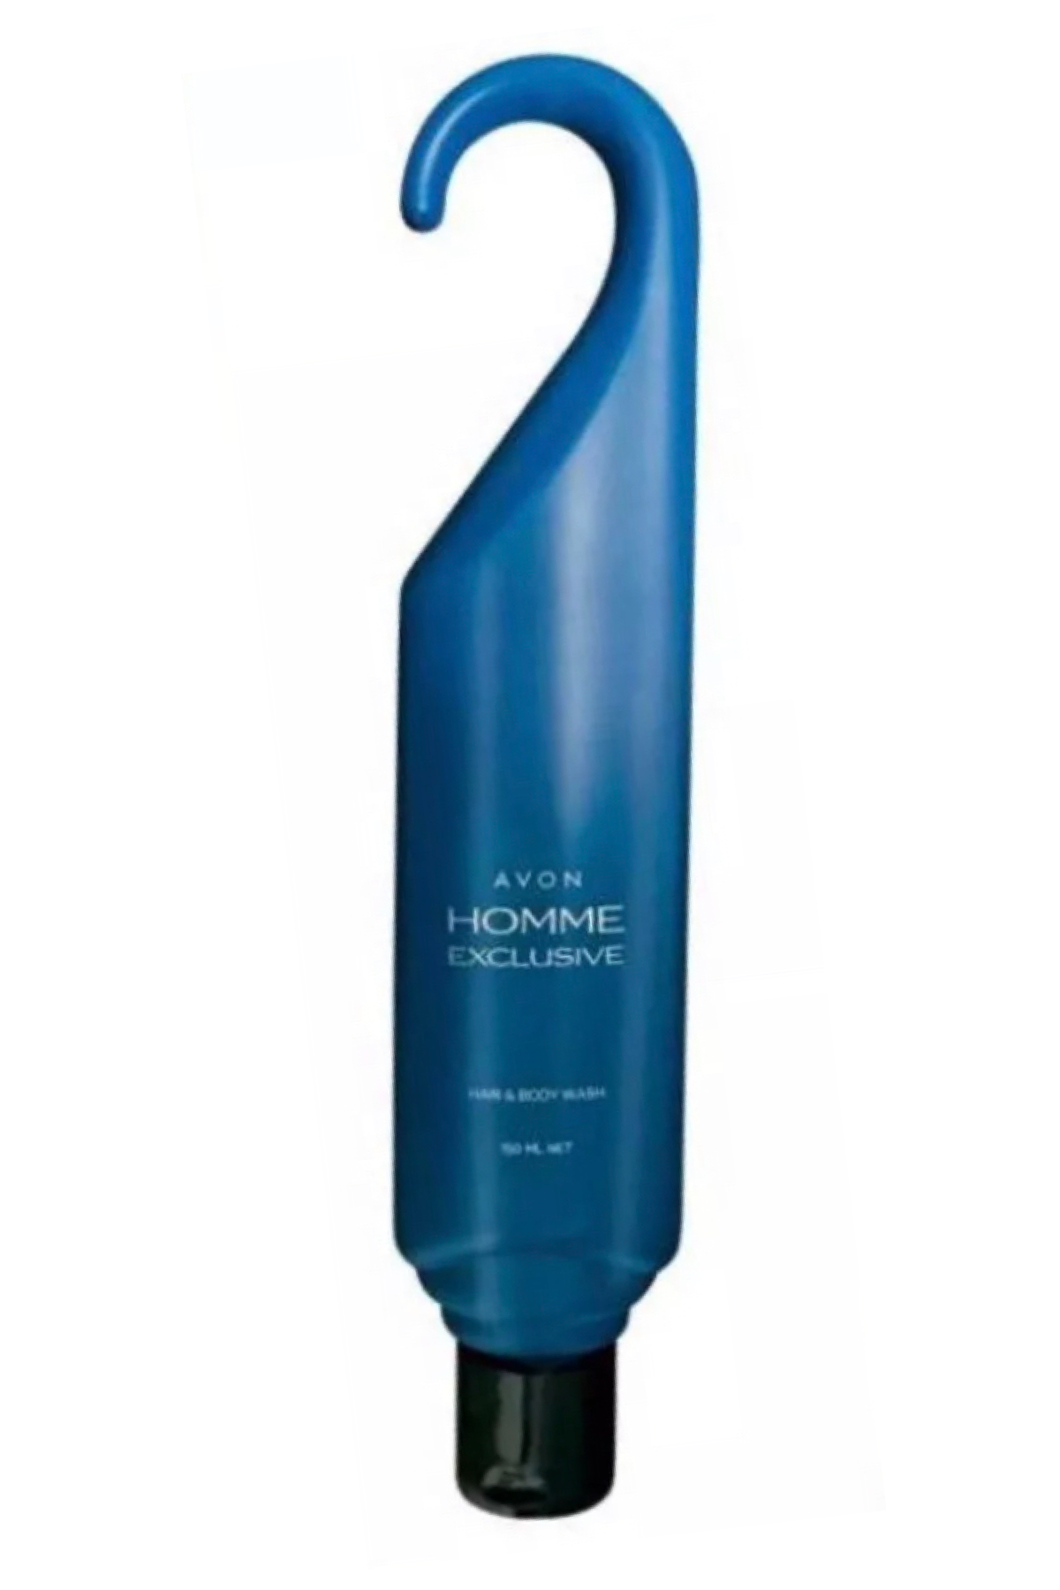 Homme Exclusive Hair and Body Wash 150ml